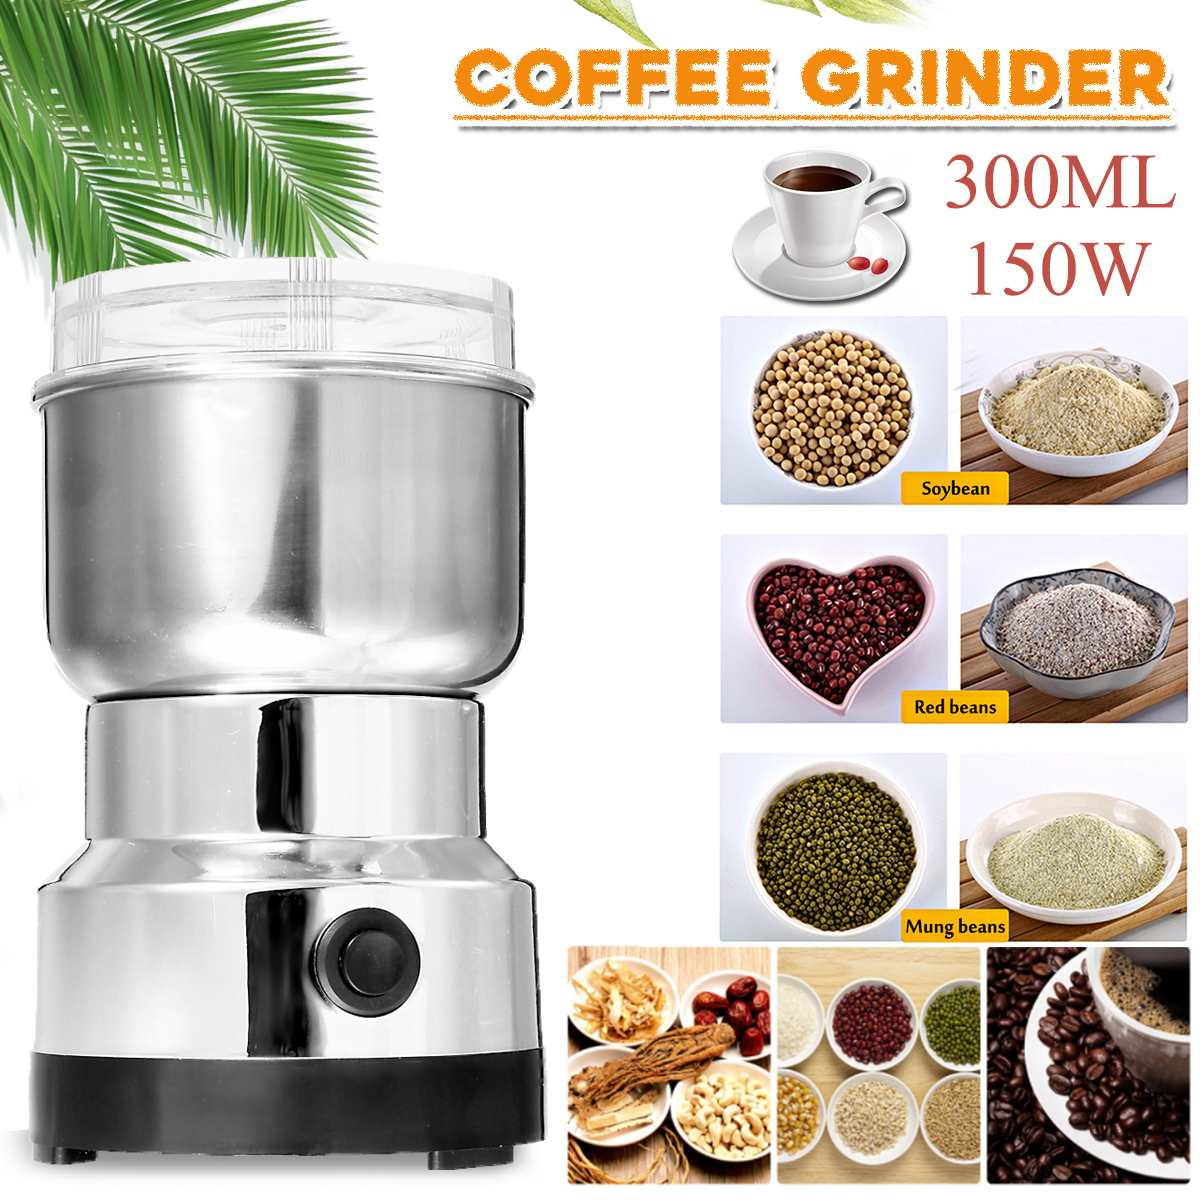 150W 300ml Electric Coffee Machine Bean Grinder Blenders For Home Kitchen Office Stainless Steel 220V Home Use Coffee Maker